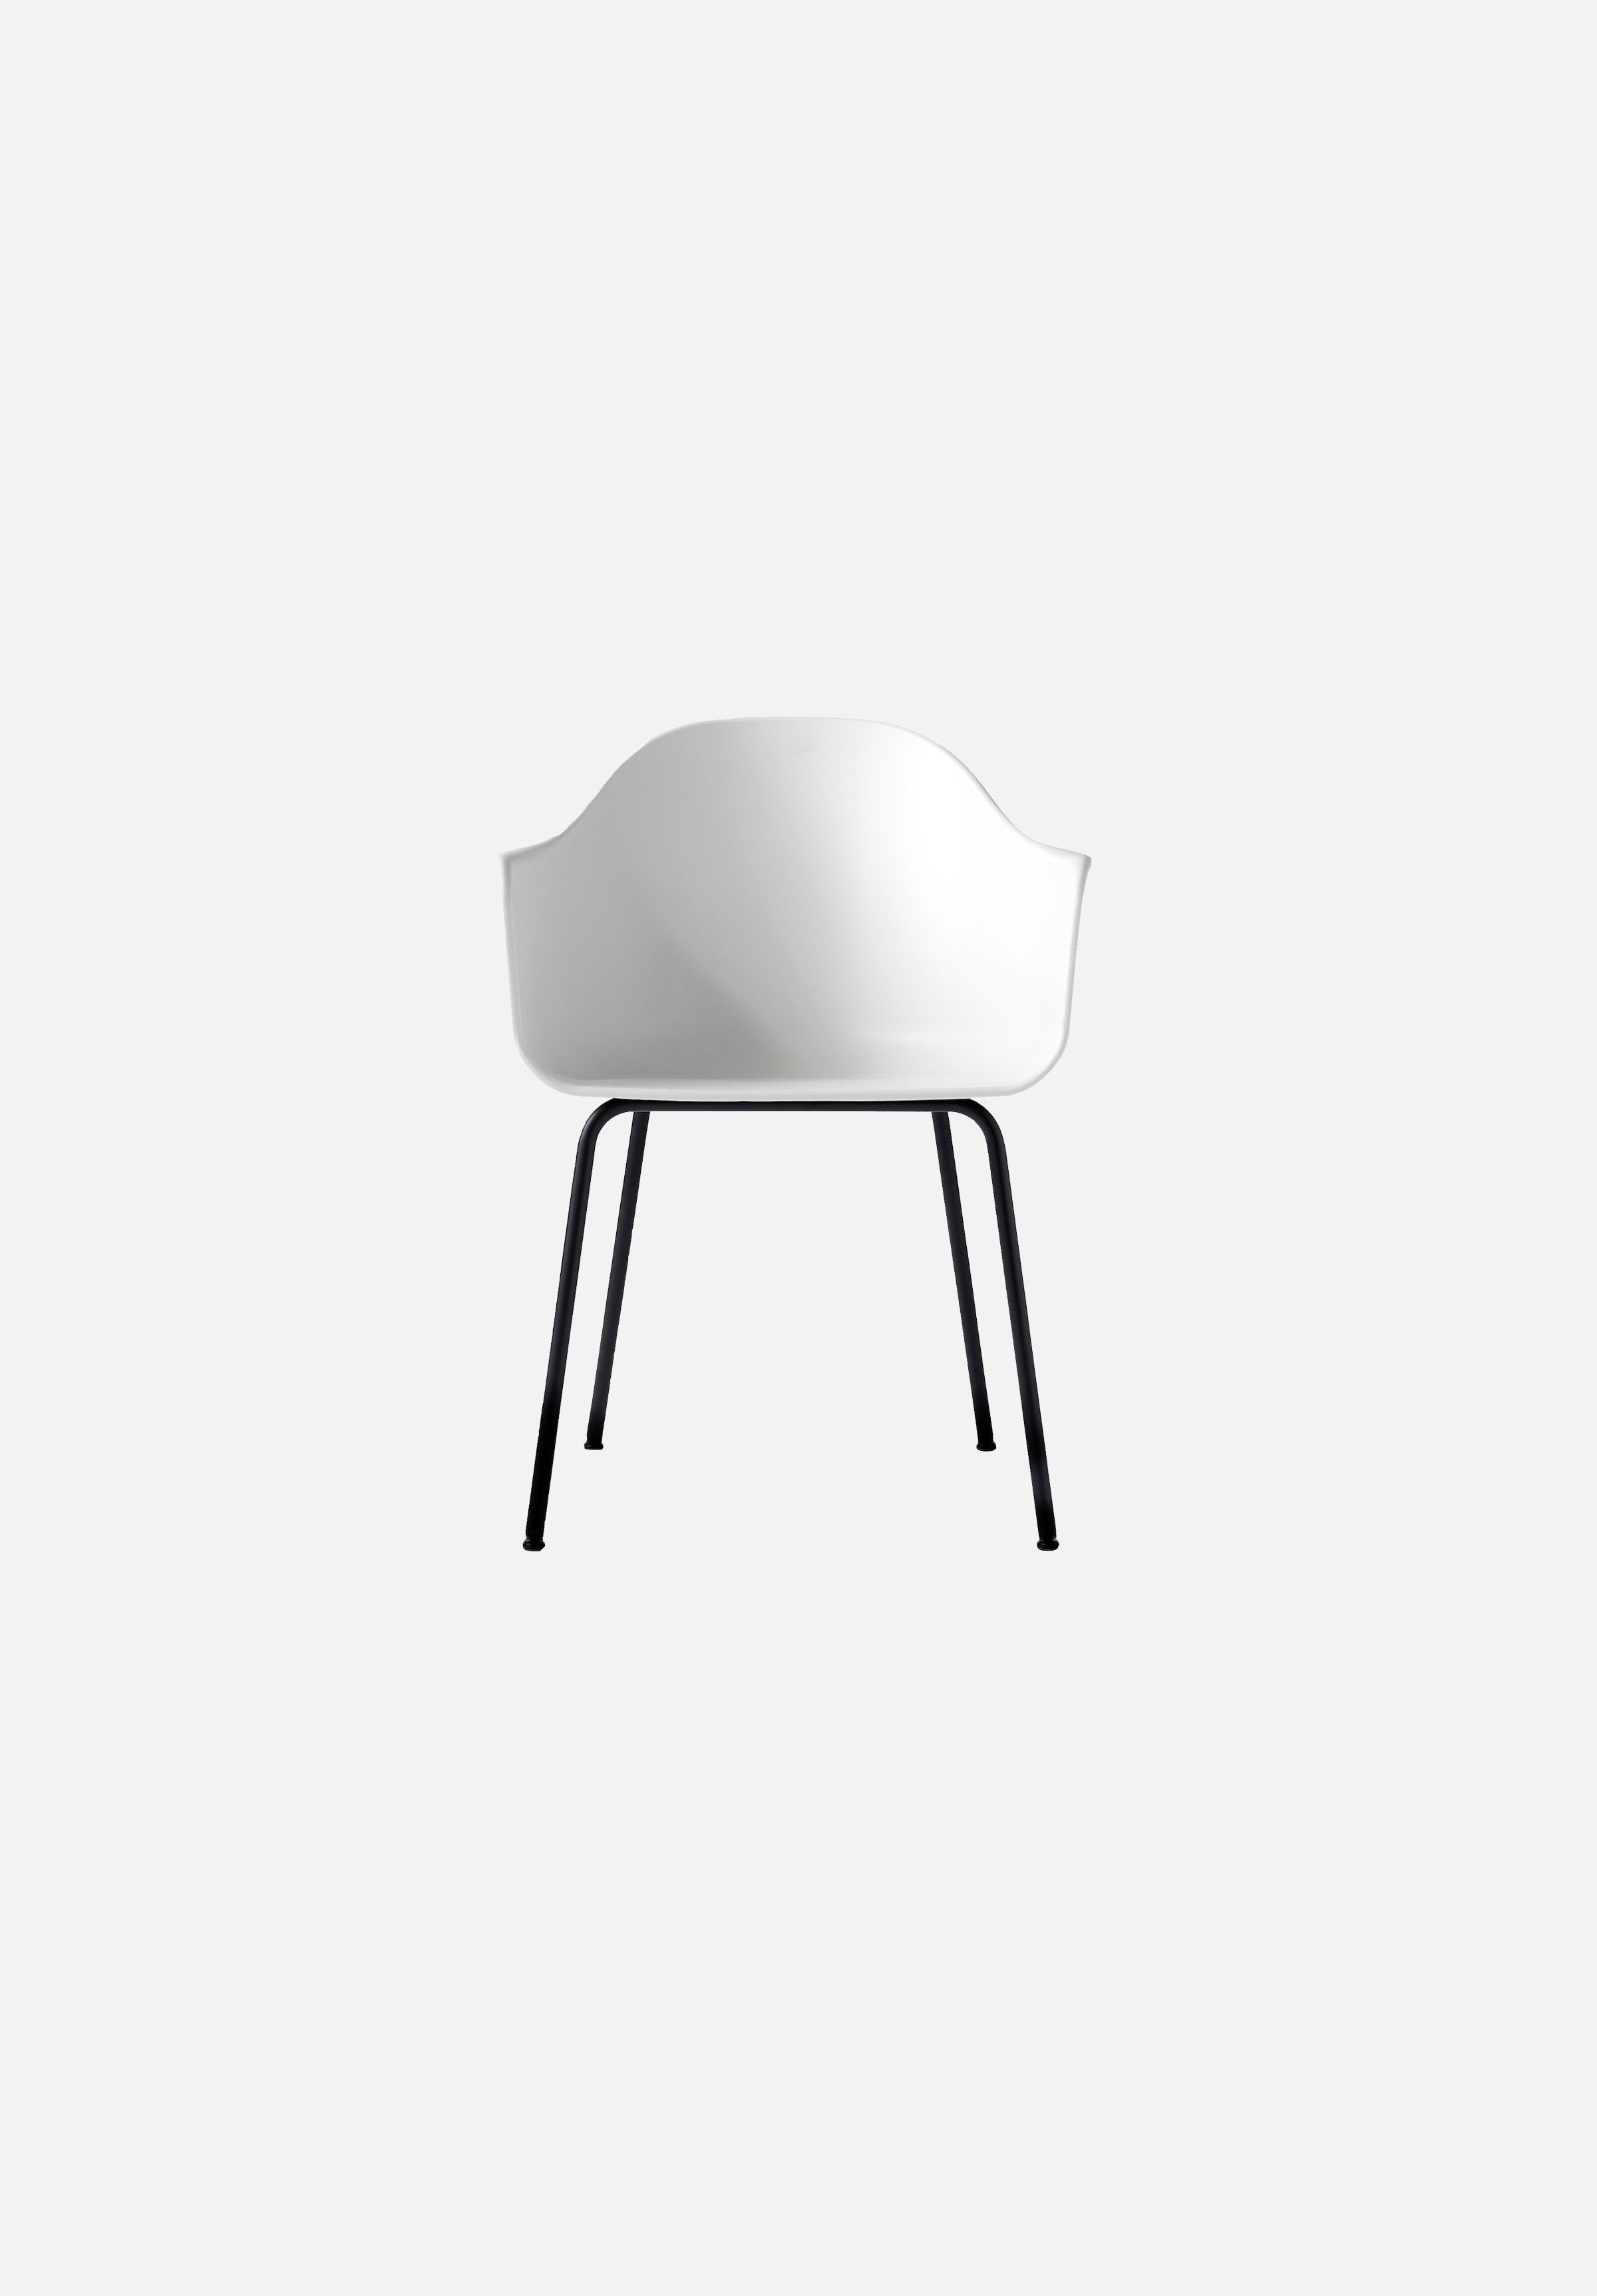 Harbour Chair - Steel Base-Norm Architects-Menu-white-Black Steel-danish-interior-furniture-denmark-Average-design-toronto-canada